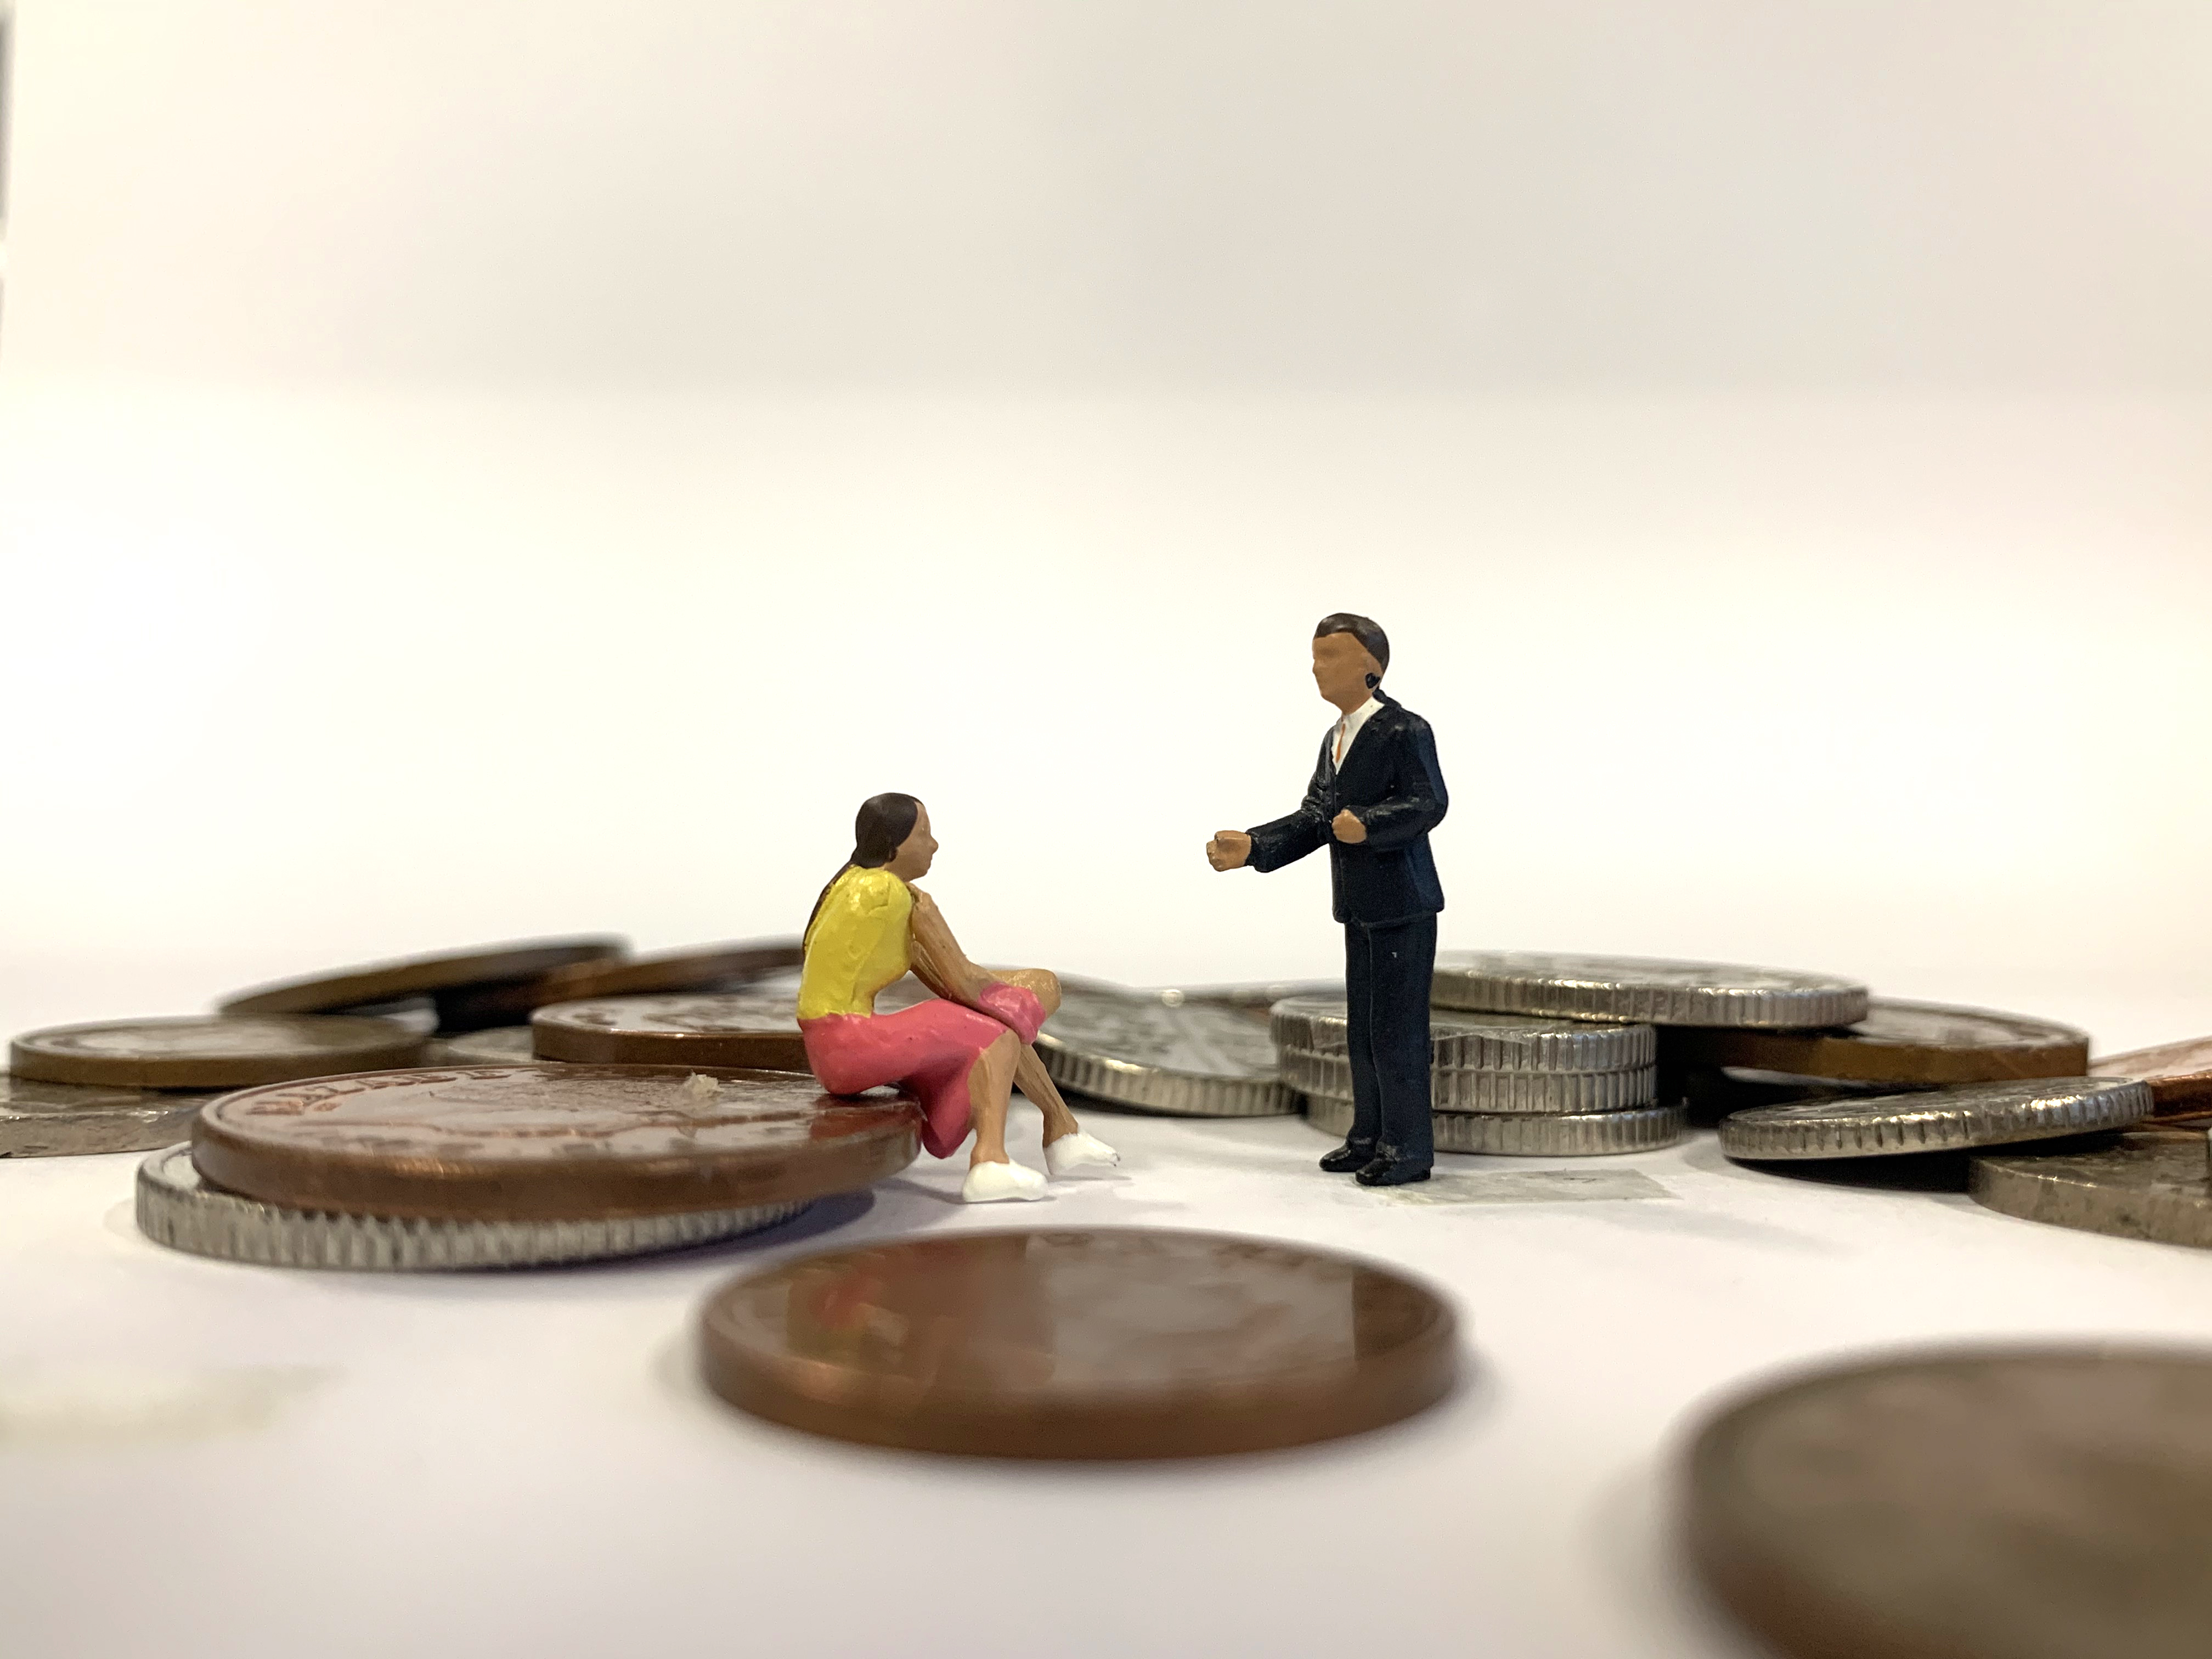 Sitting on coins